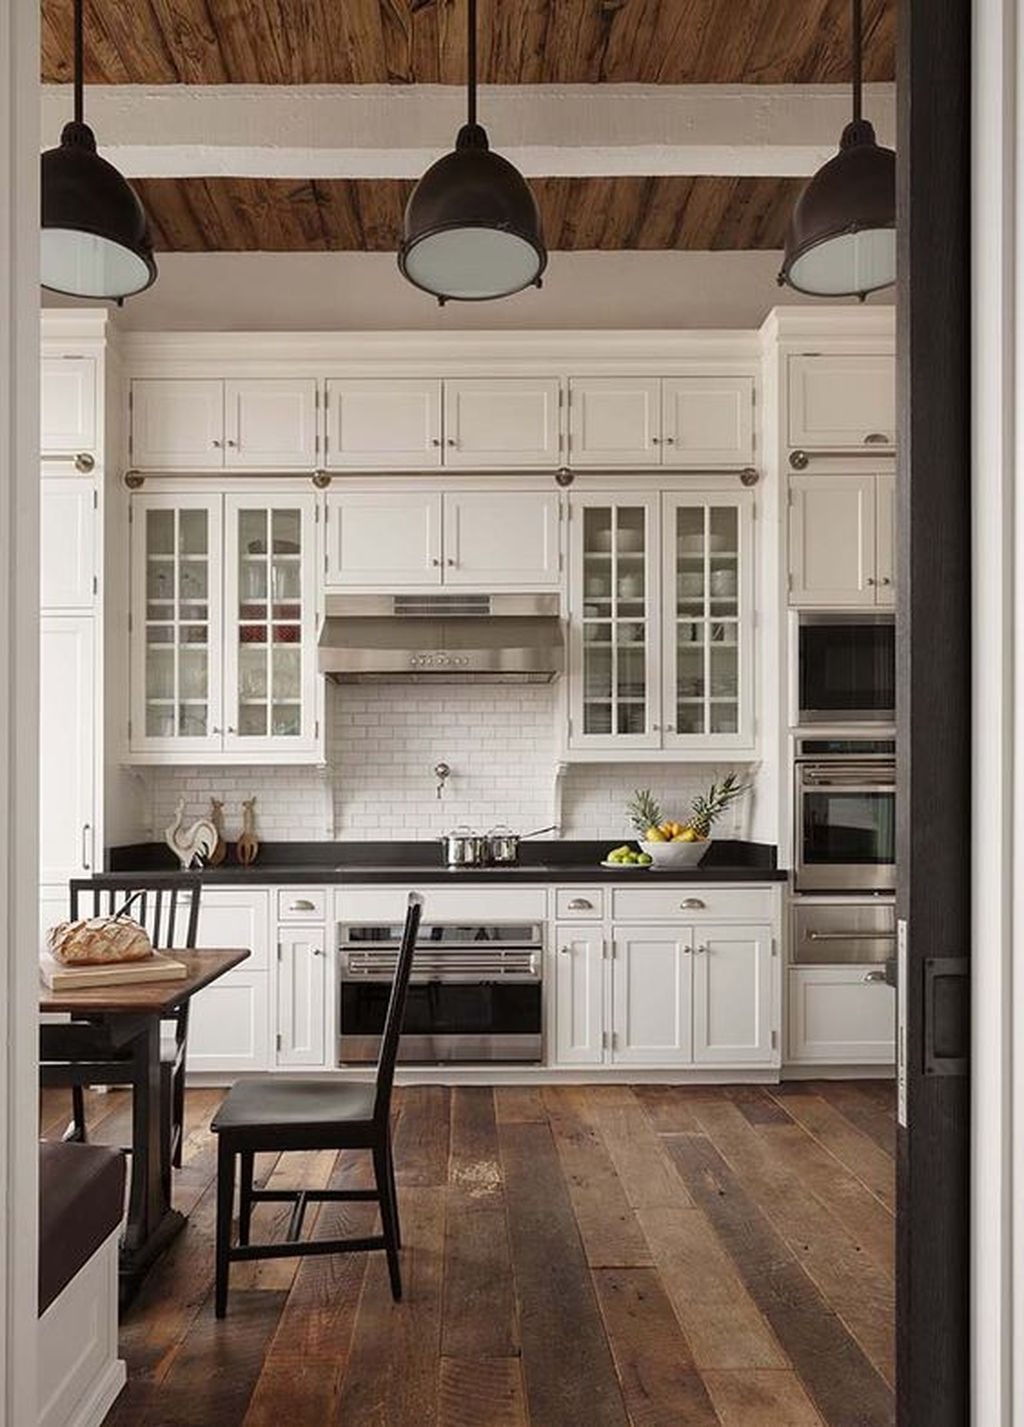 Farmhousekitchen whitekitchen nice adorable traditional white